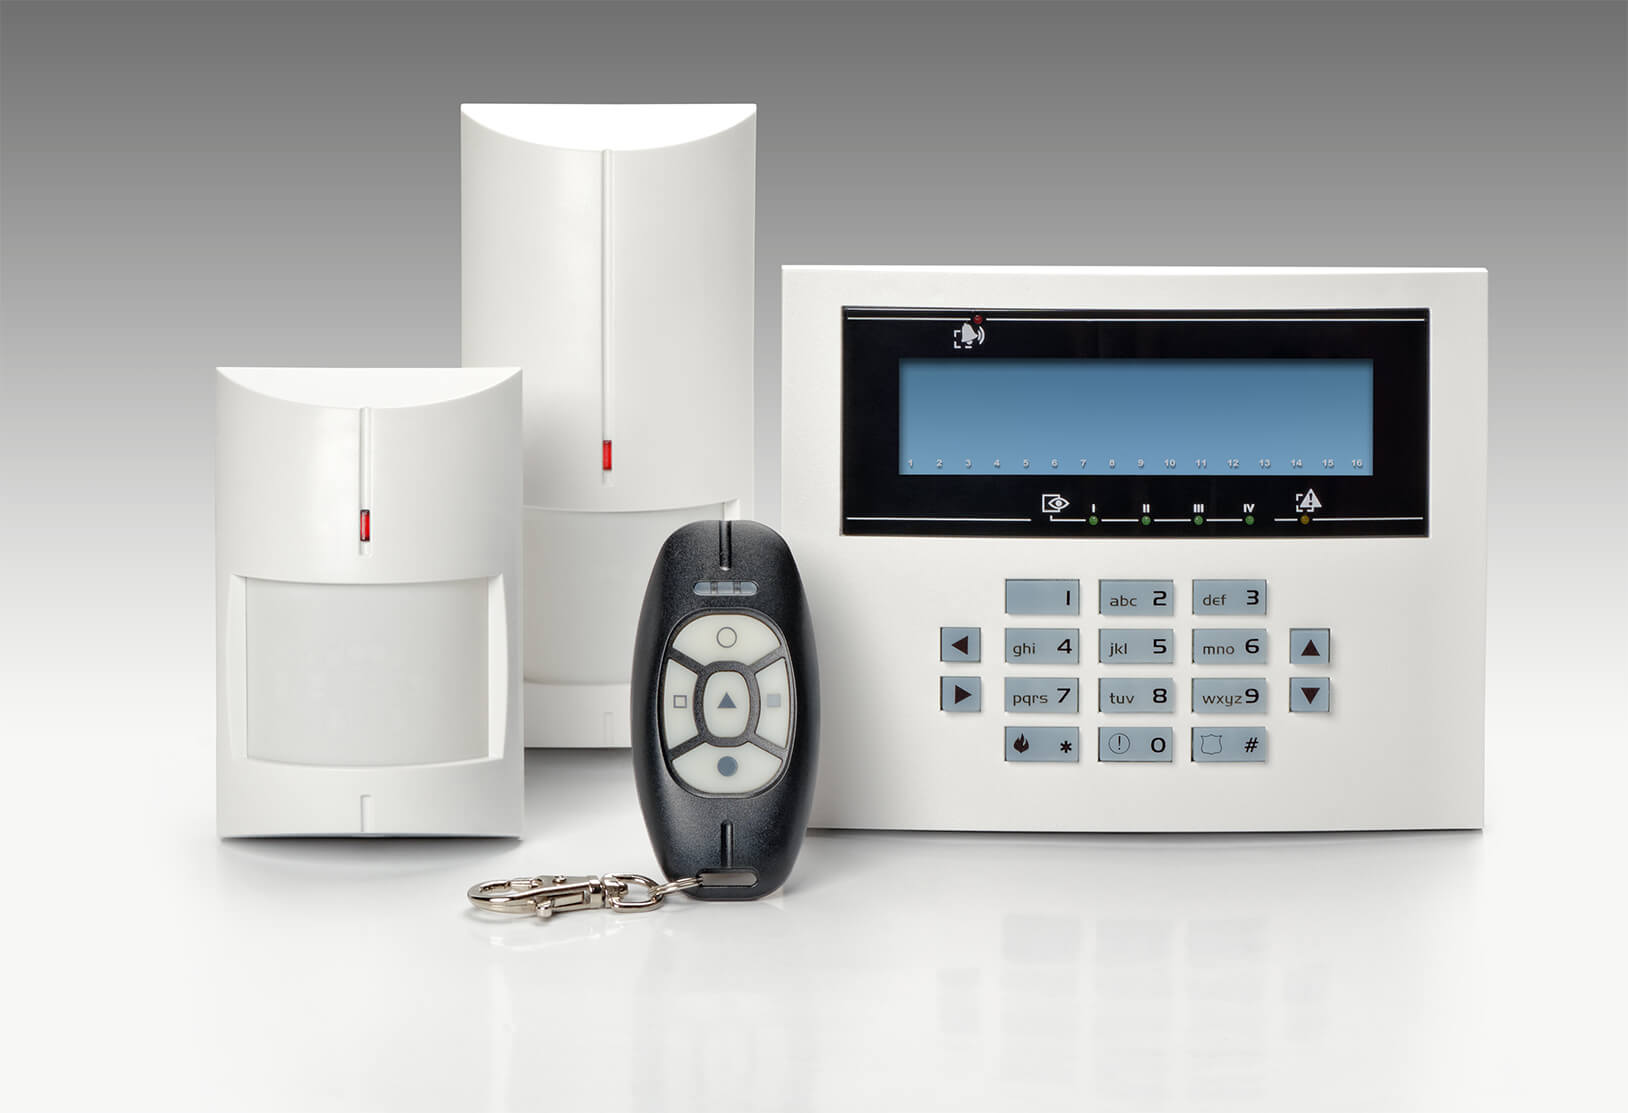 Business & Residential NACOSS Approved Burglar Alarms In Earlsfield SW18 - Local Earlsfield SW18 security company.Call 02078872244 - Dedicated to Safety & Security. Companies, shops and homes ..